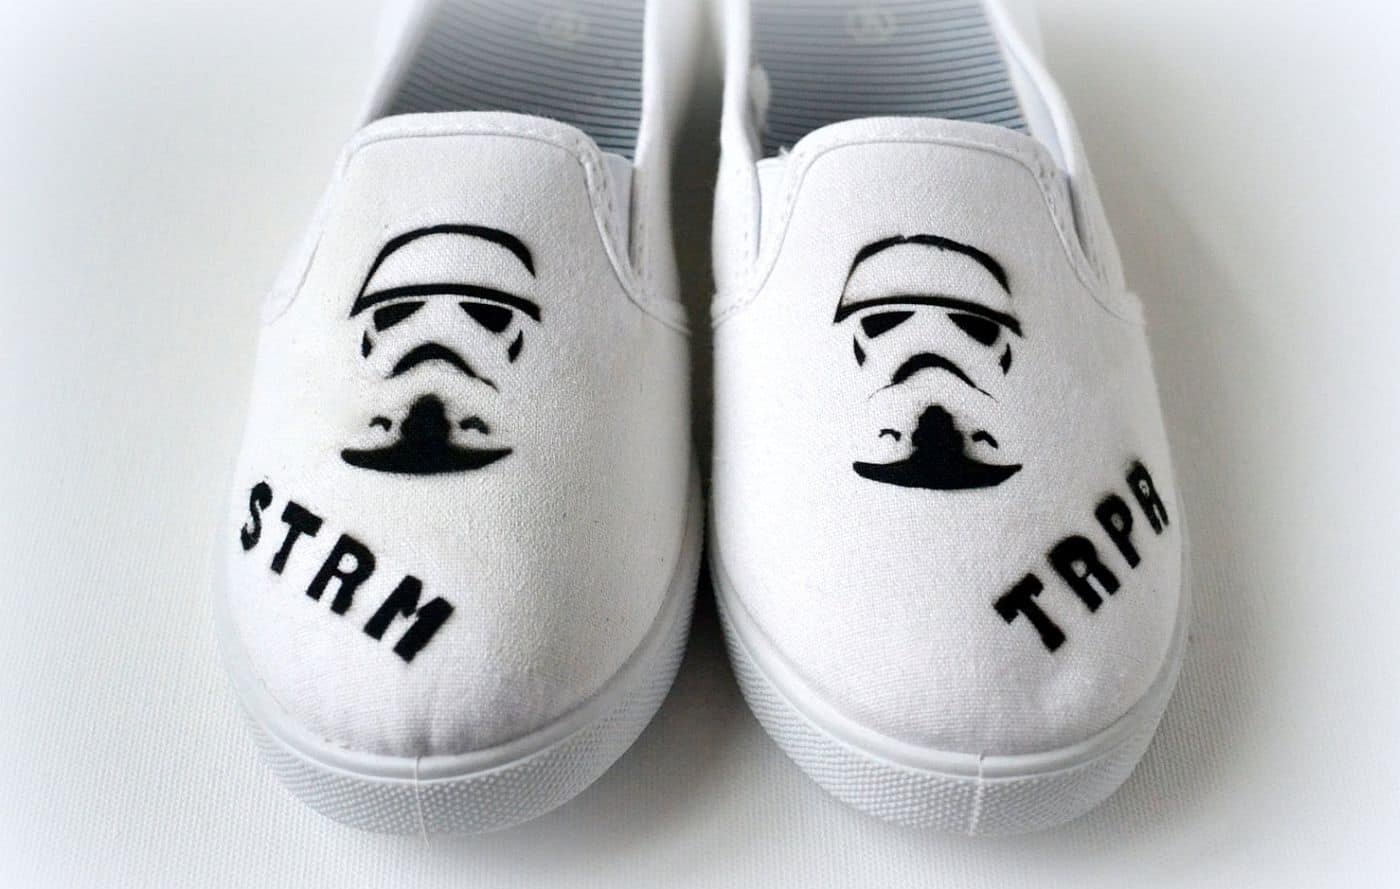 Cool Star Wars airbrushed shoes